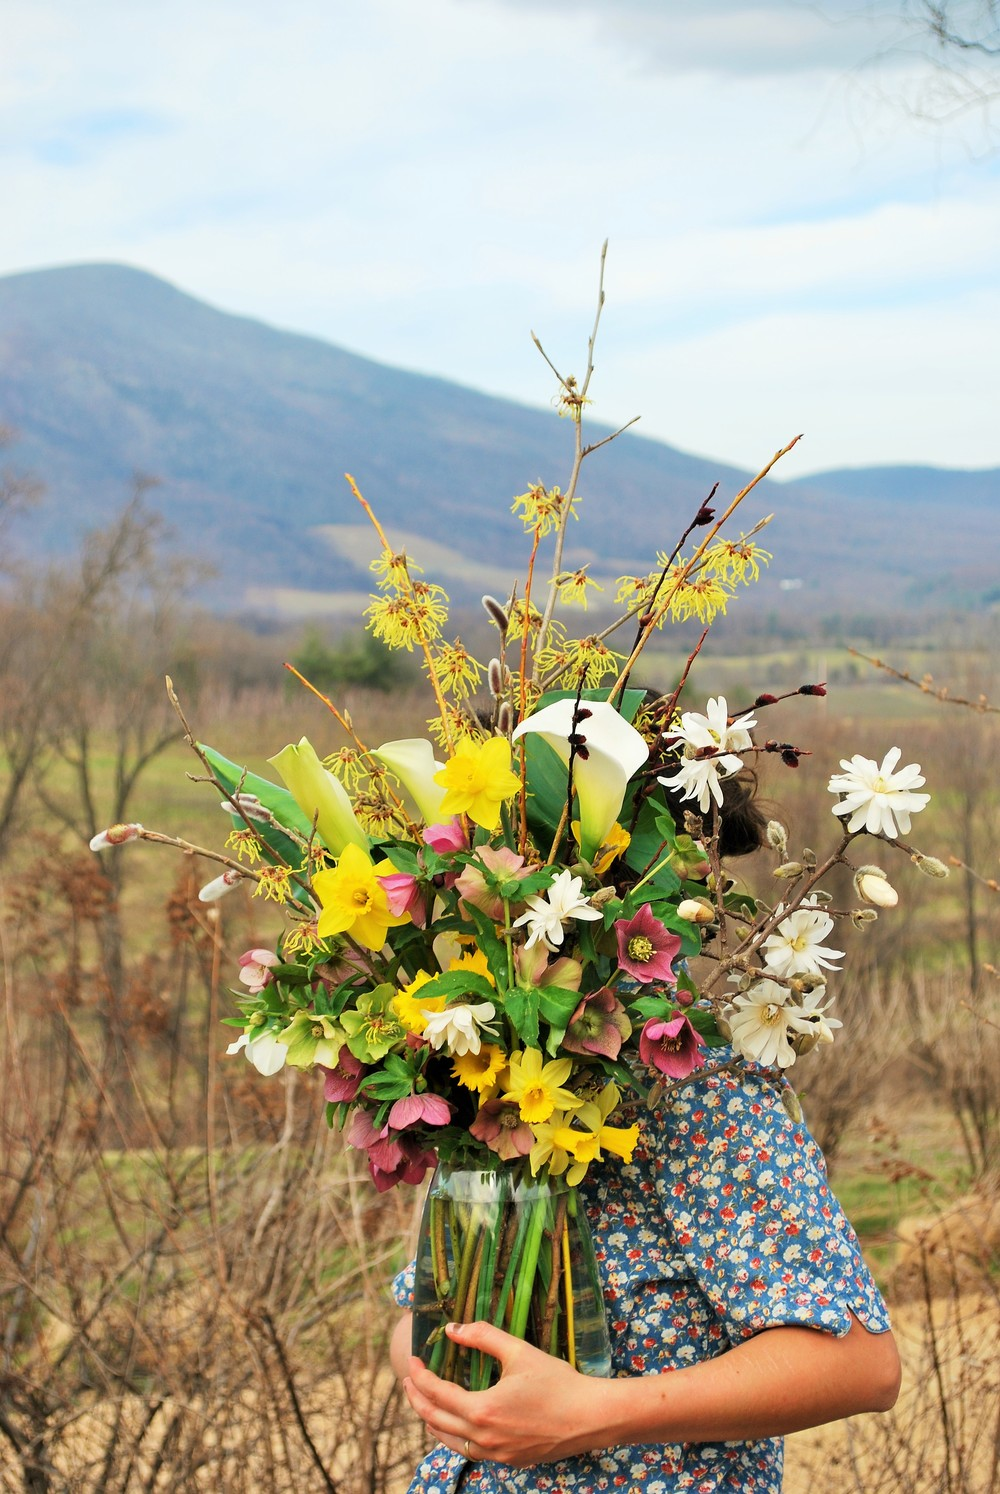 A gathered arrangement of Hellebore, Daffodils, Saucer Magnolia, Pussy Willow, Witch Hazel, Calla Lily and other budding twigs from the cutting gardens with Three Ridges Mtn. as the backdrop.